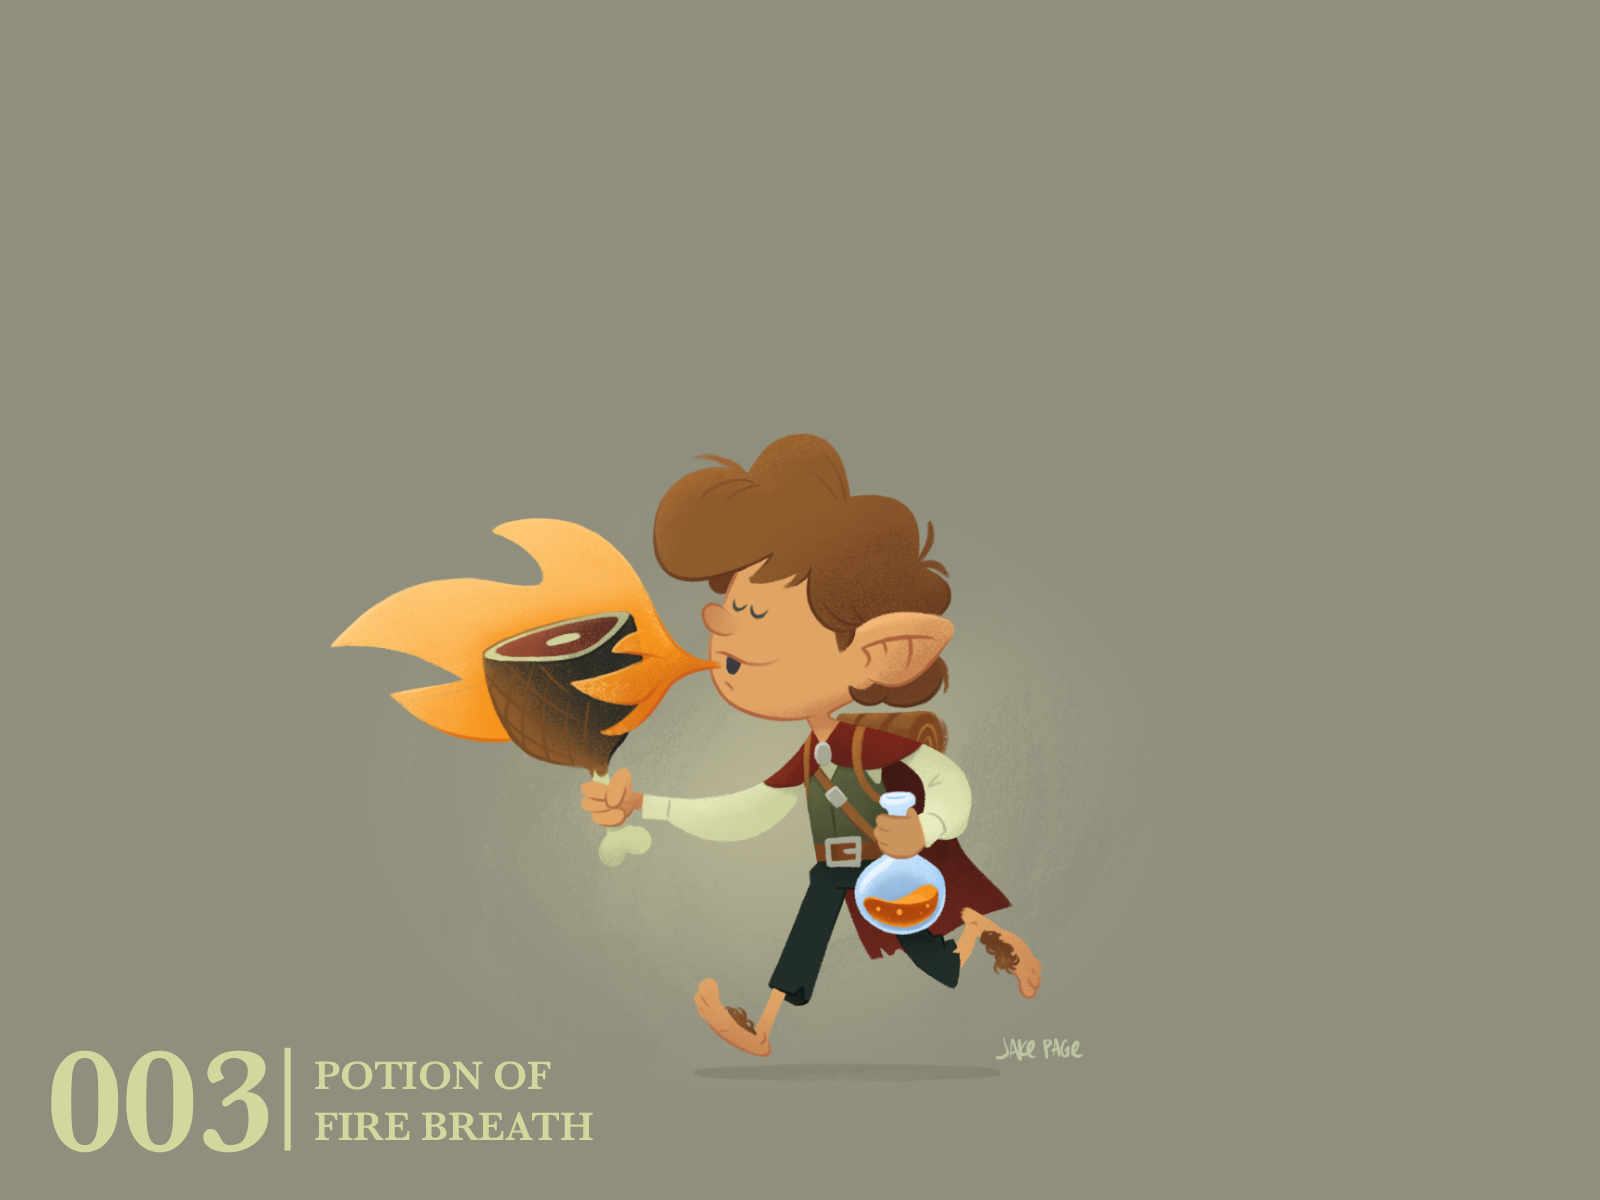 003-PotionofFireBreath.png